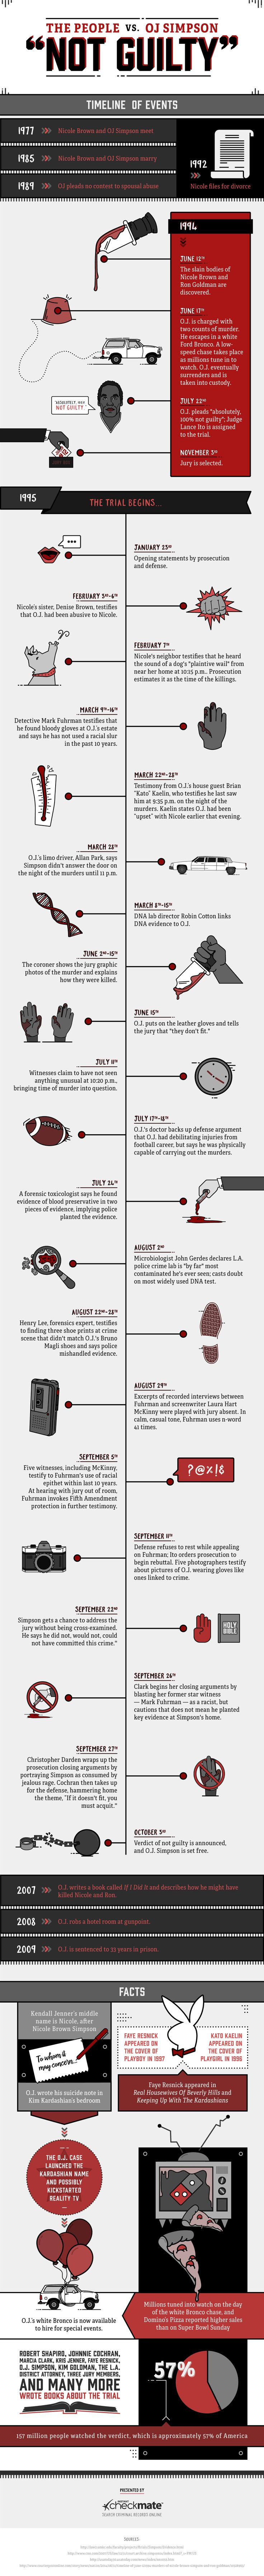 The True Timeline Behind The People Vs. OJ Simpson! (Infographic Magic) | All Things Crime Blog